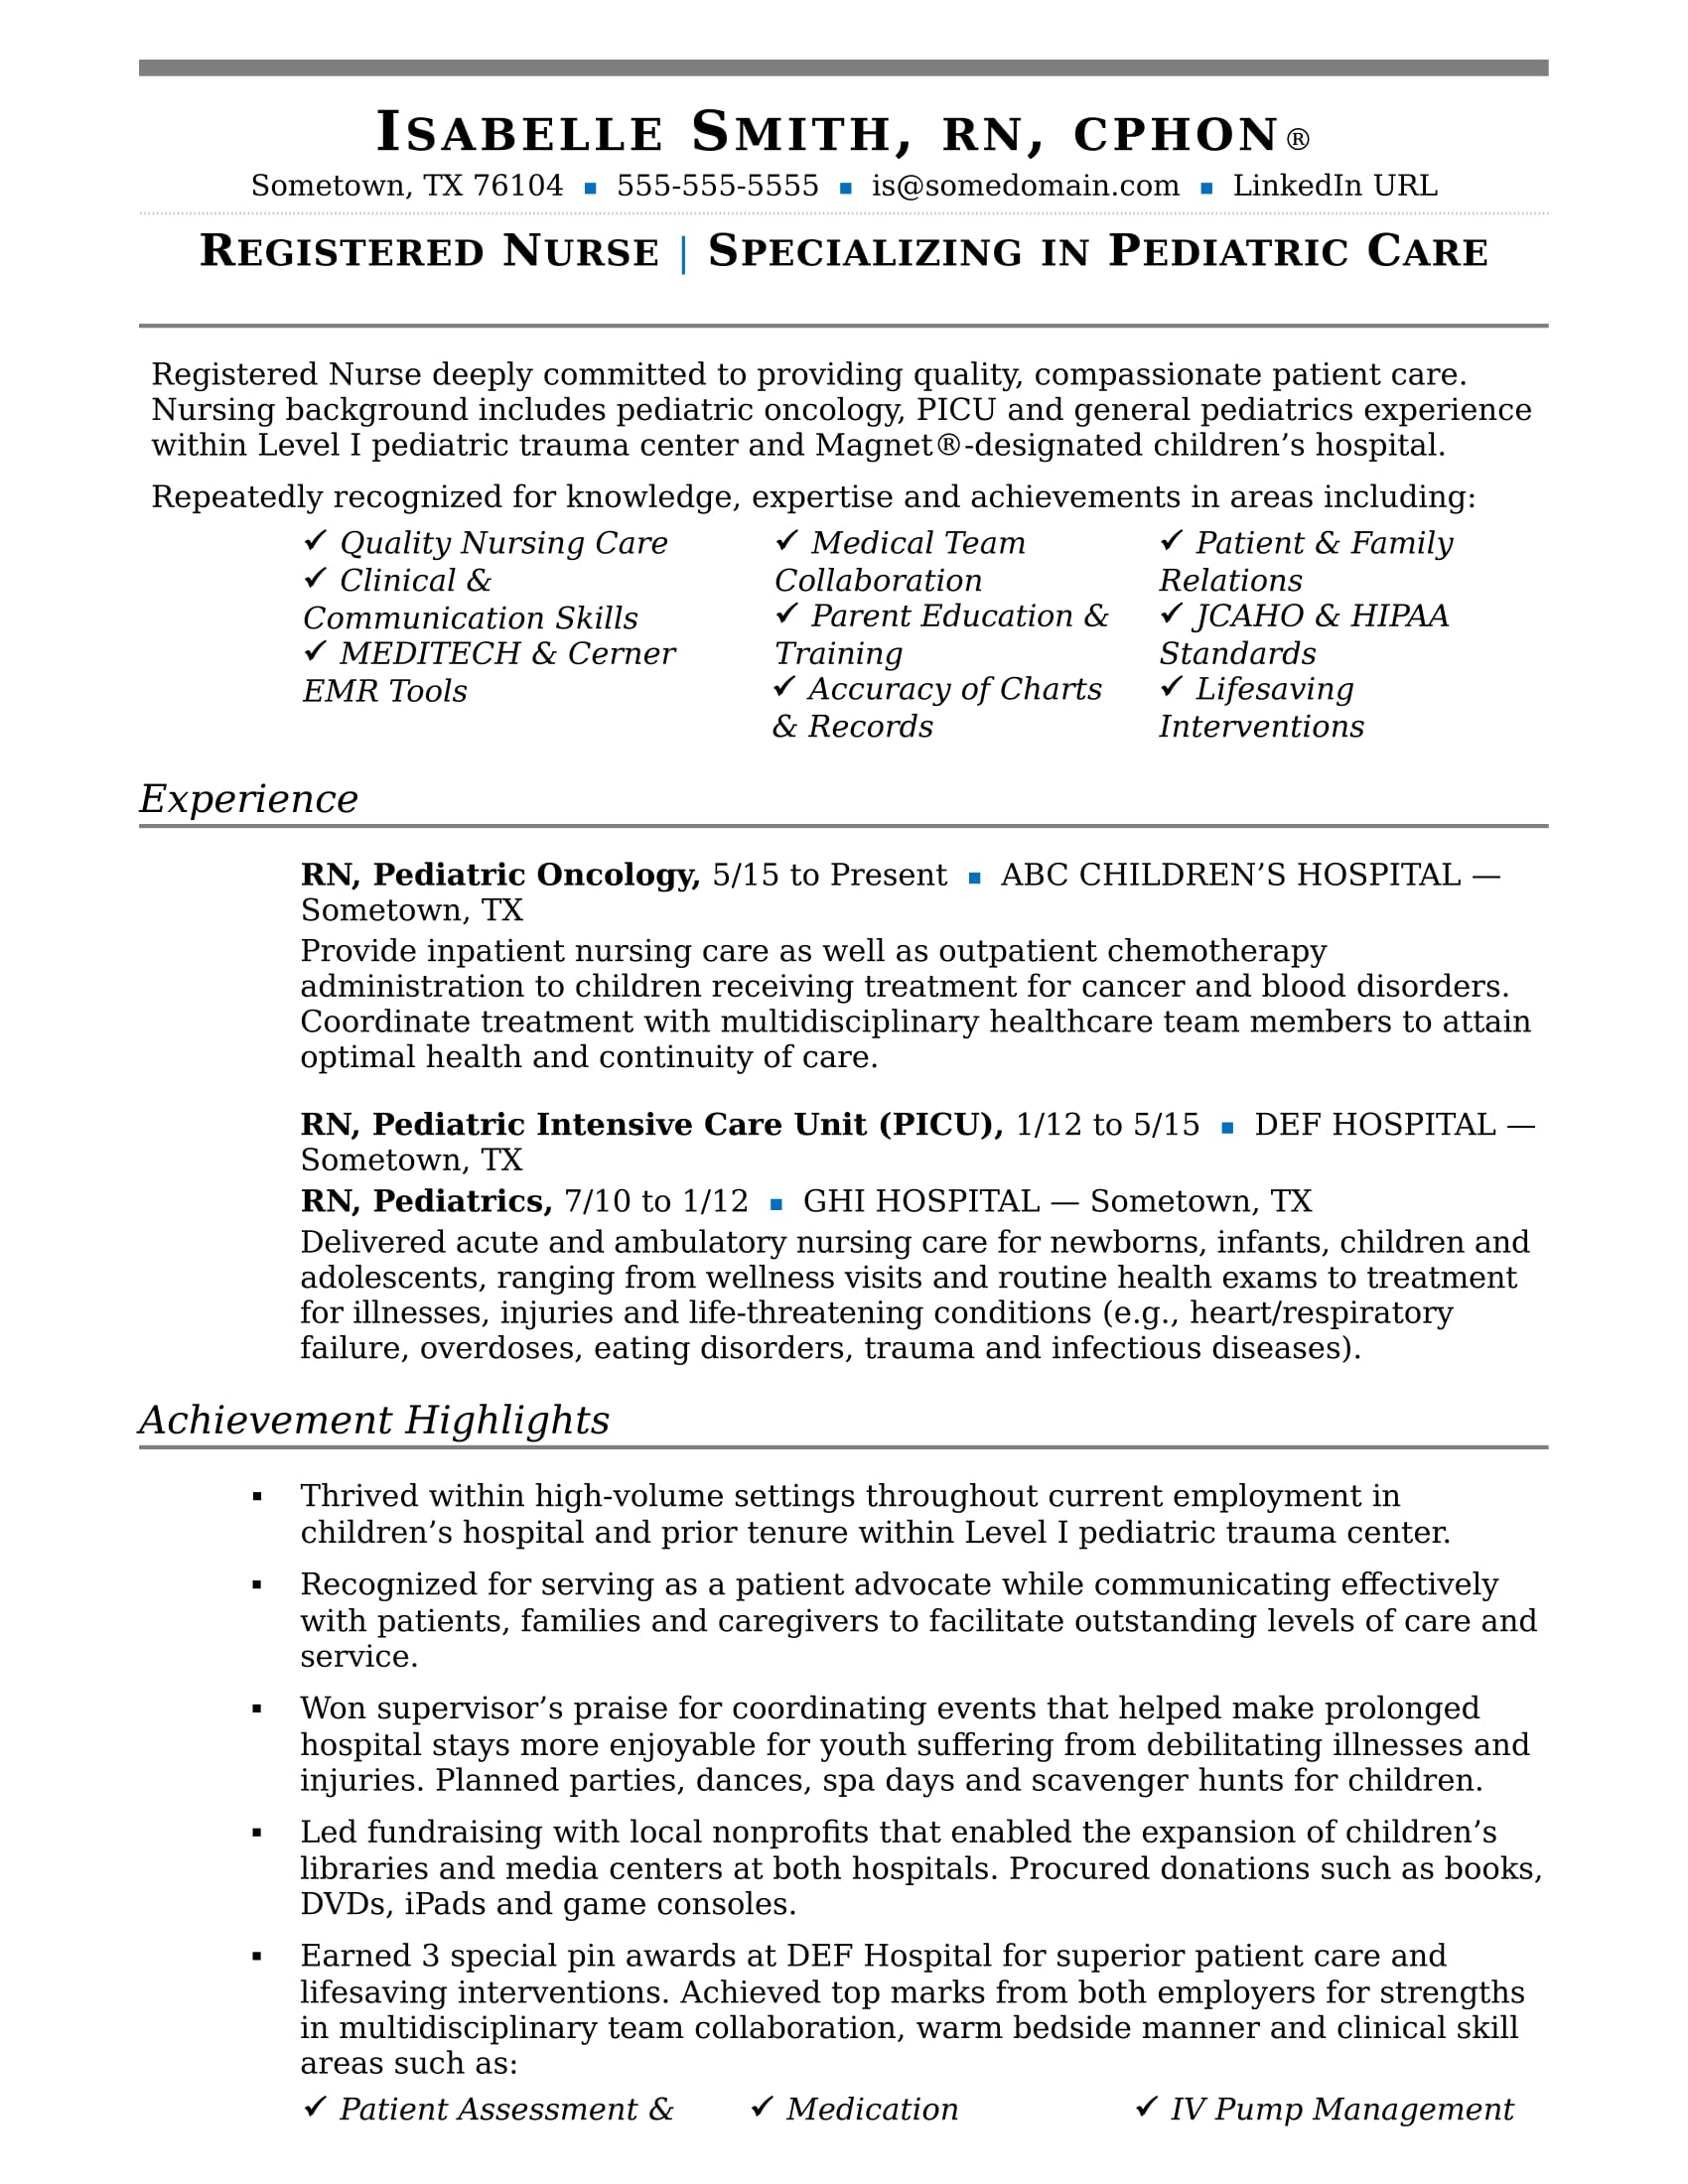 nurse resume sample monster skills and abilities for examples modern people operations Resume Skills And Abilities For A Resume Examples